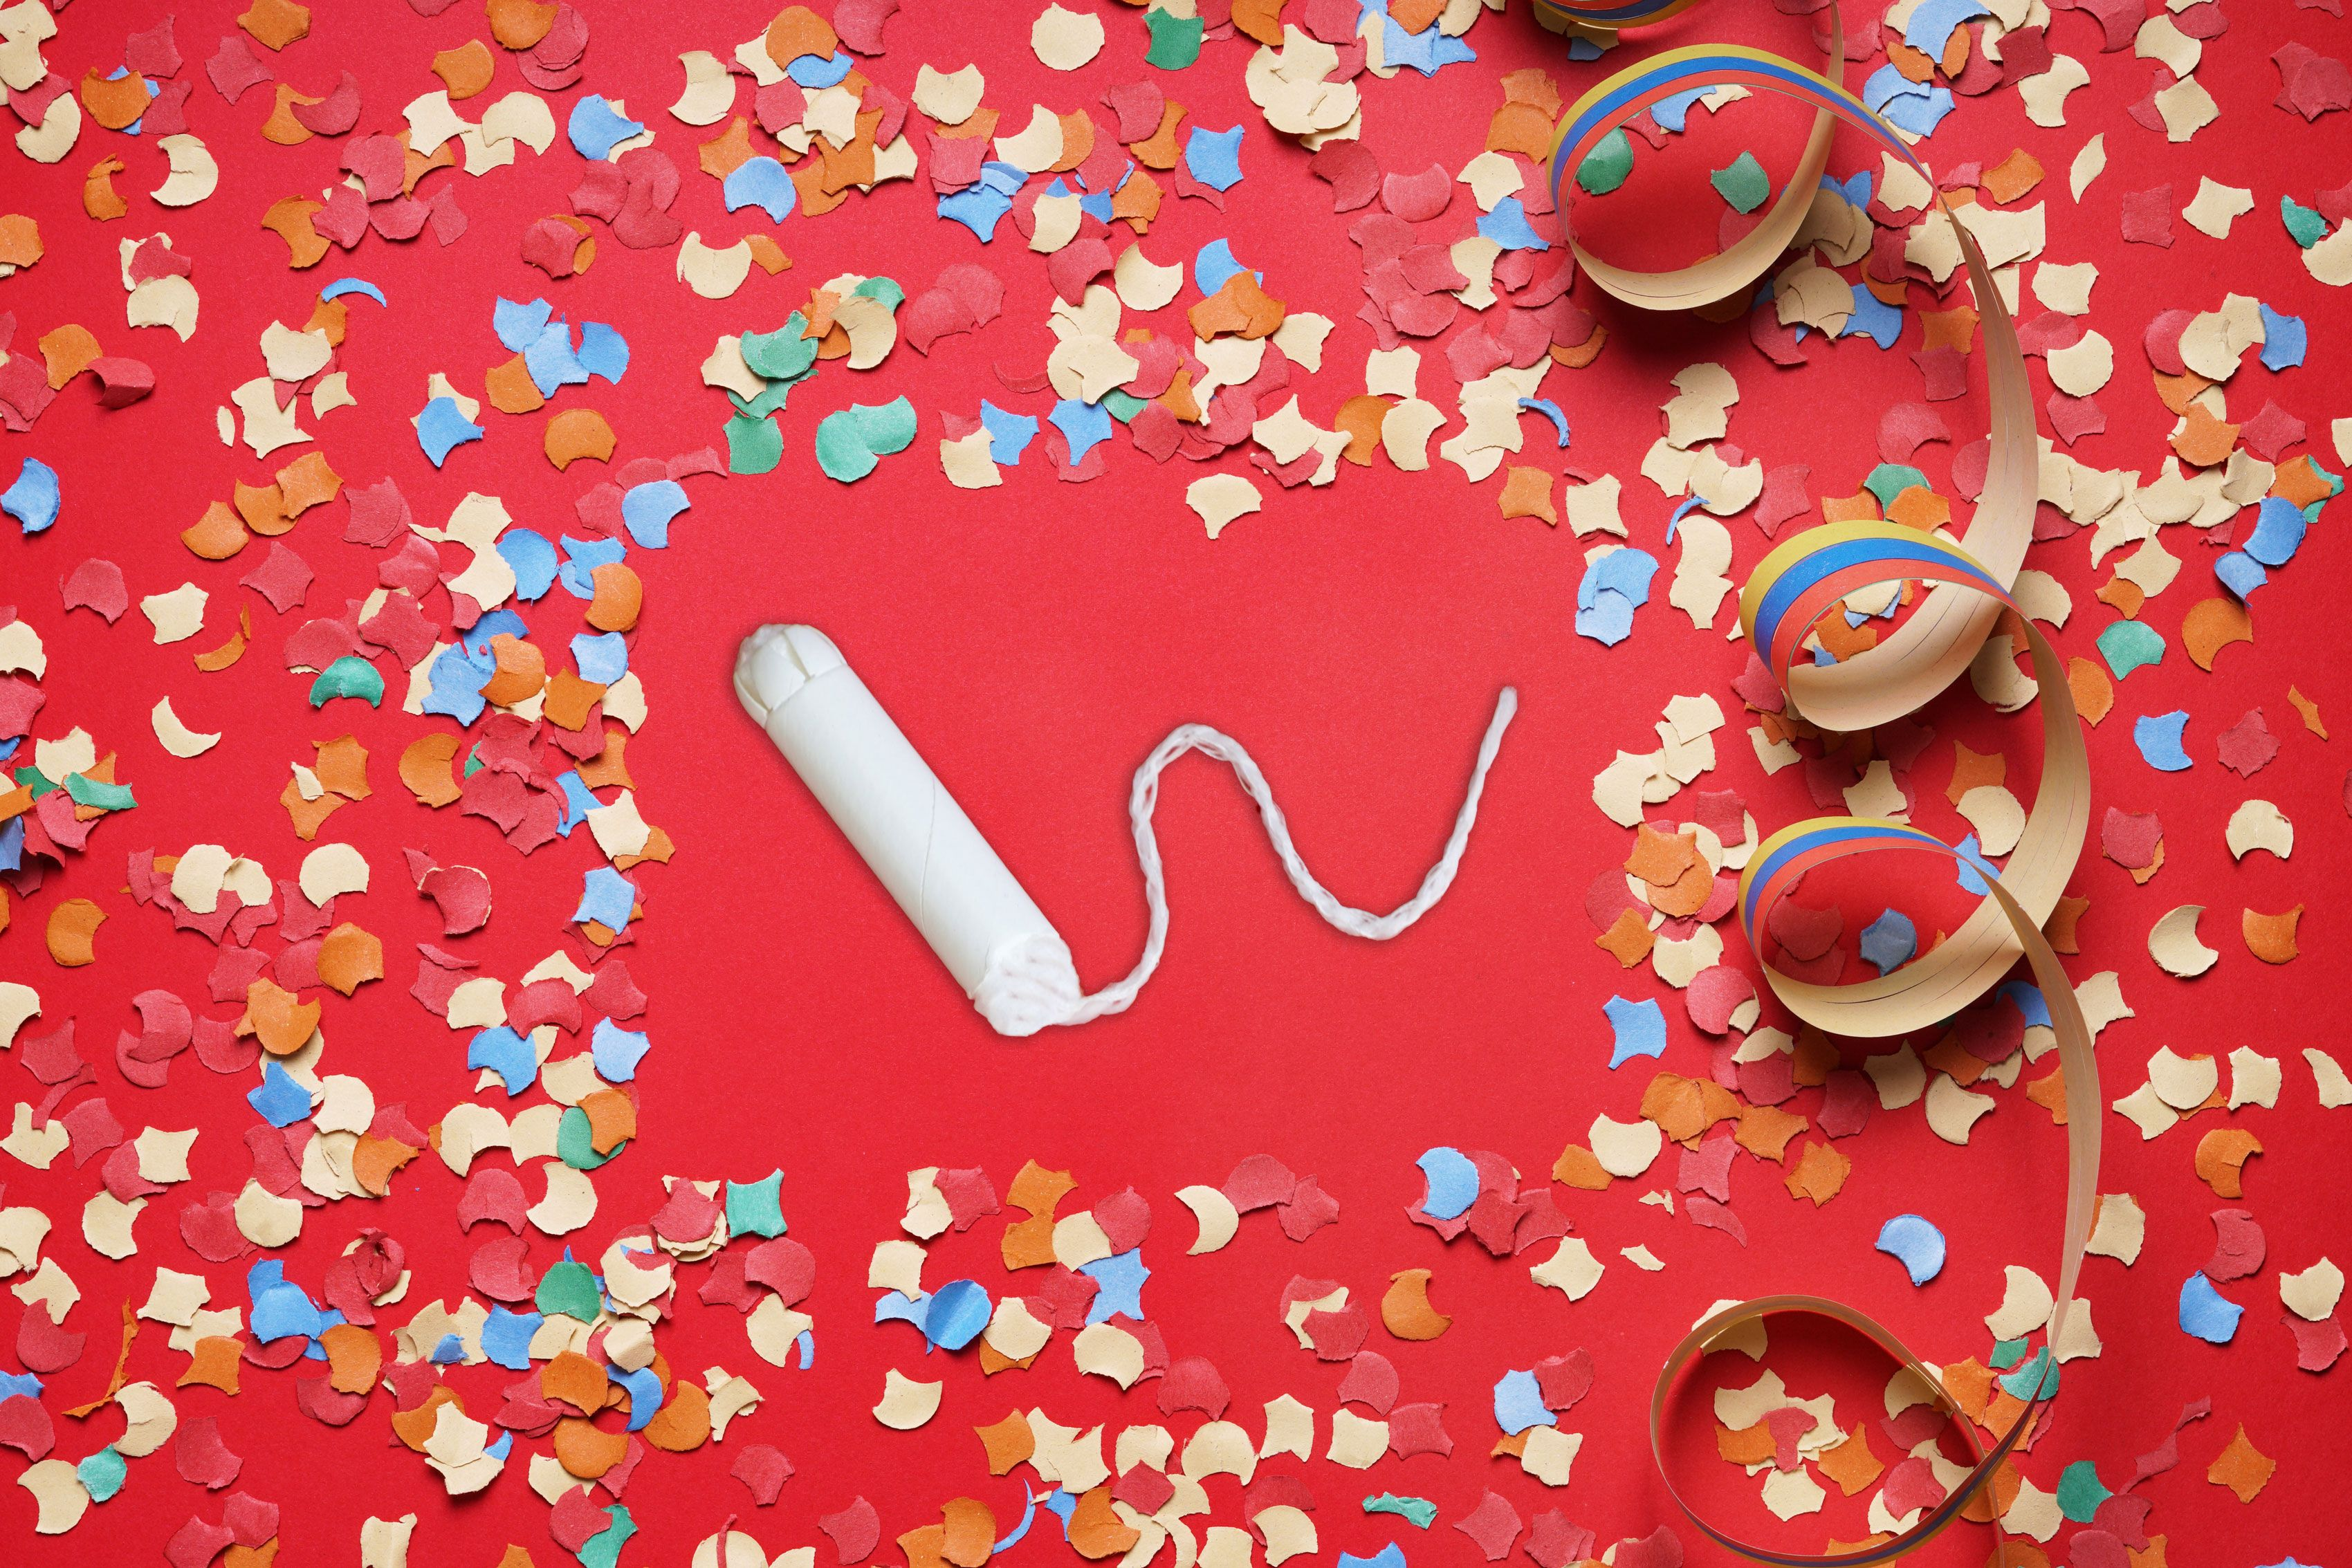 Throwing A Period Party For Your Child's First Menstrual Cycle Is *A Thing* Now